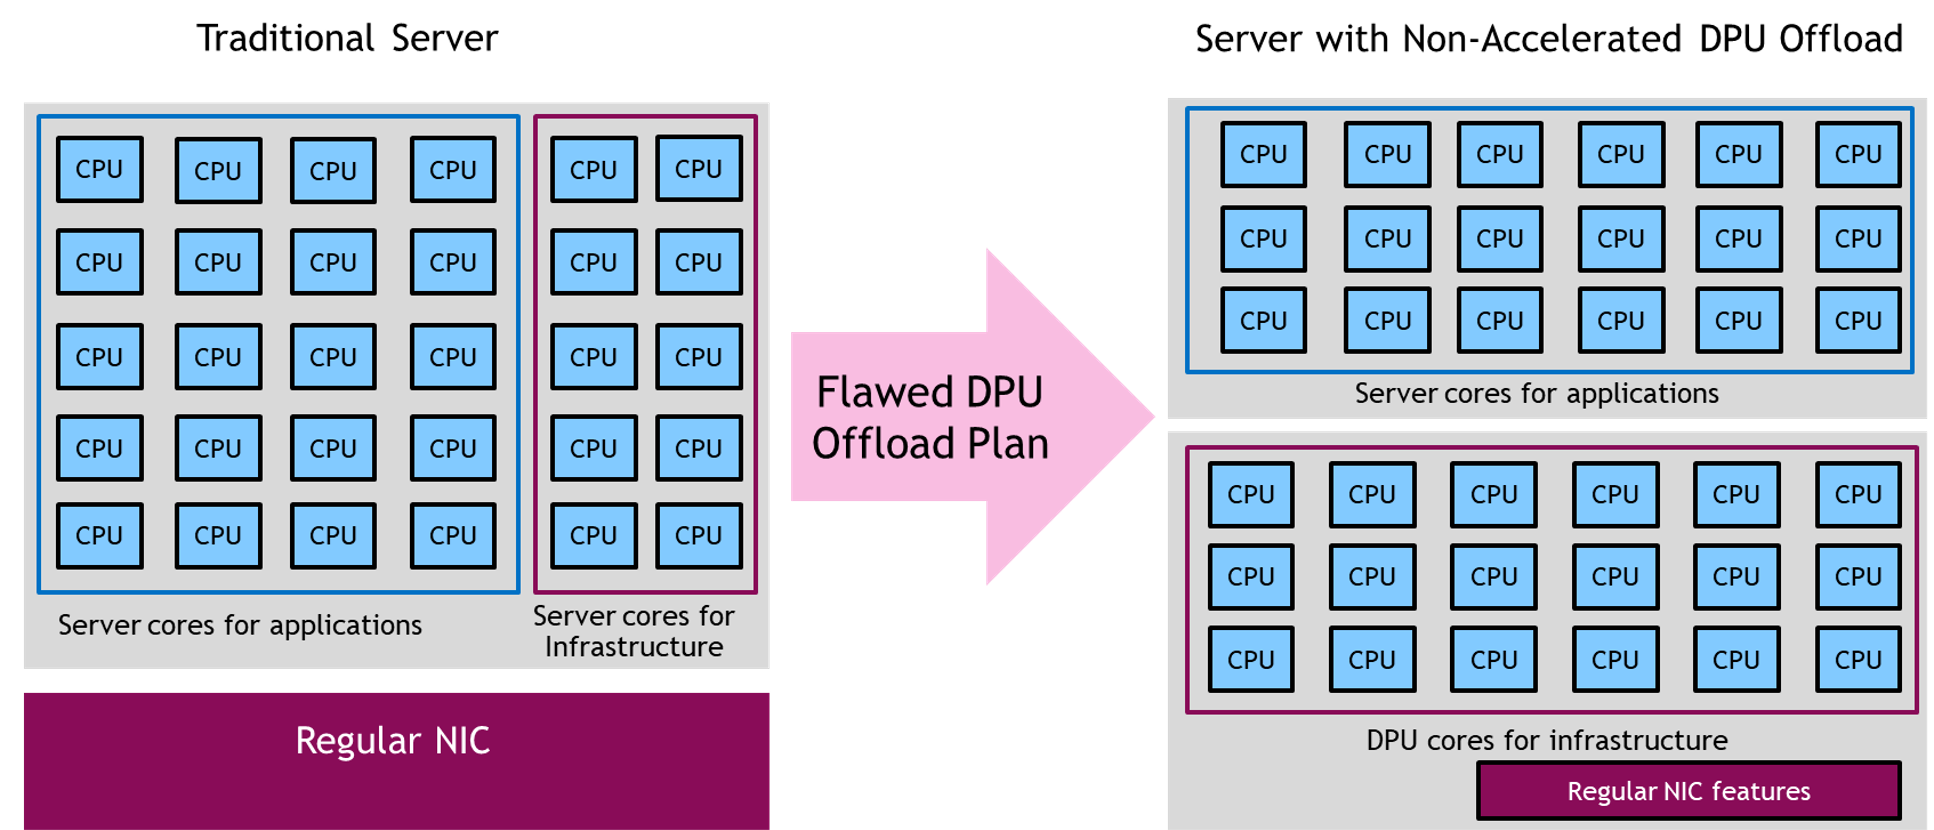 Diagram shows why naively moving application or infrastructure workloads from the server CPU to the DPU CPU without suitable hardware acceleration does not provide any benefits to performance or efficiency. It shows that such a split merely moves the CPU workload around so what previously ran on 30 CPU cores now requires 36 cores, 18 CPU cores and 18 DPU cores.